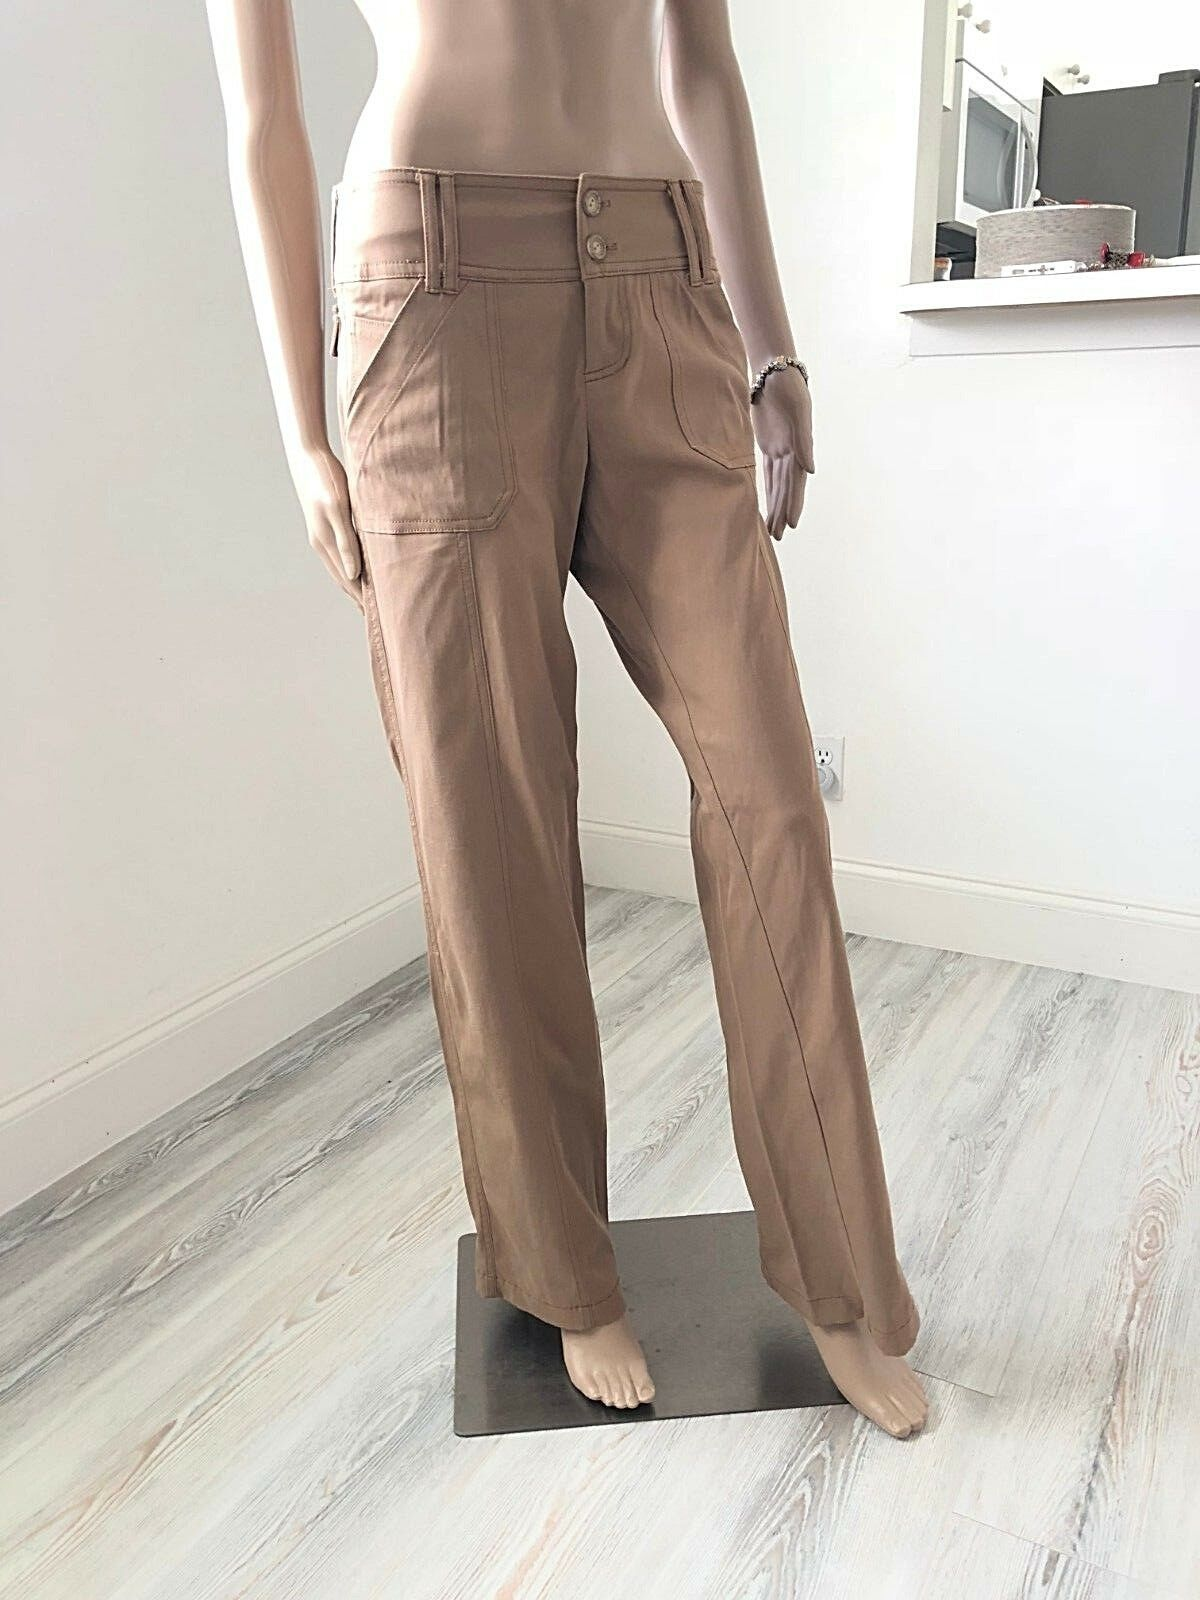 EQUESTRIAN DESIGNS Stretch Casual Pants Draped Fabric Relaxed Fit Khaki Sz S